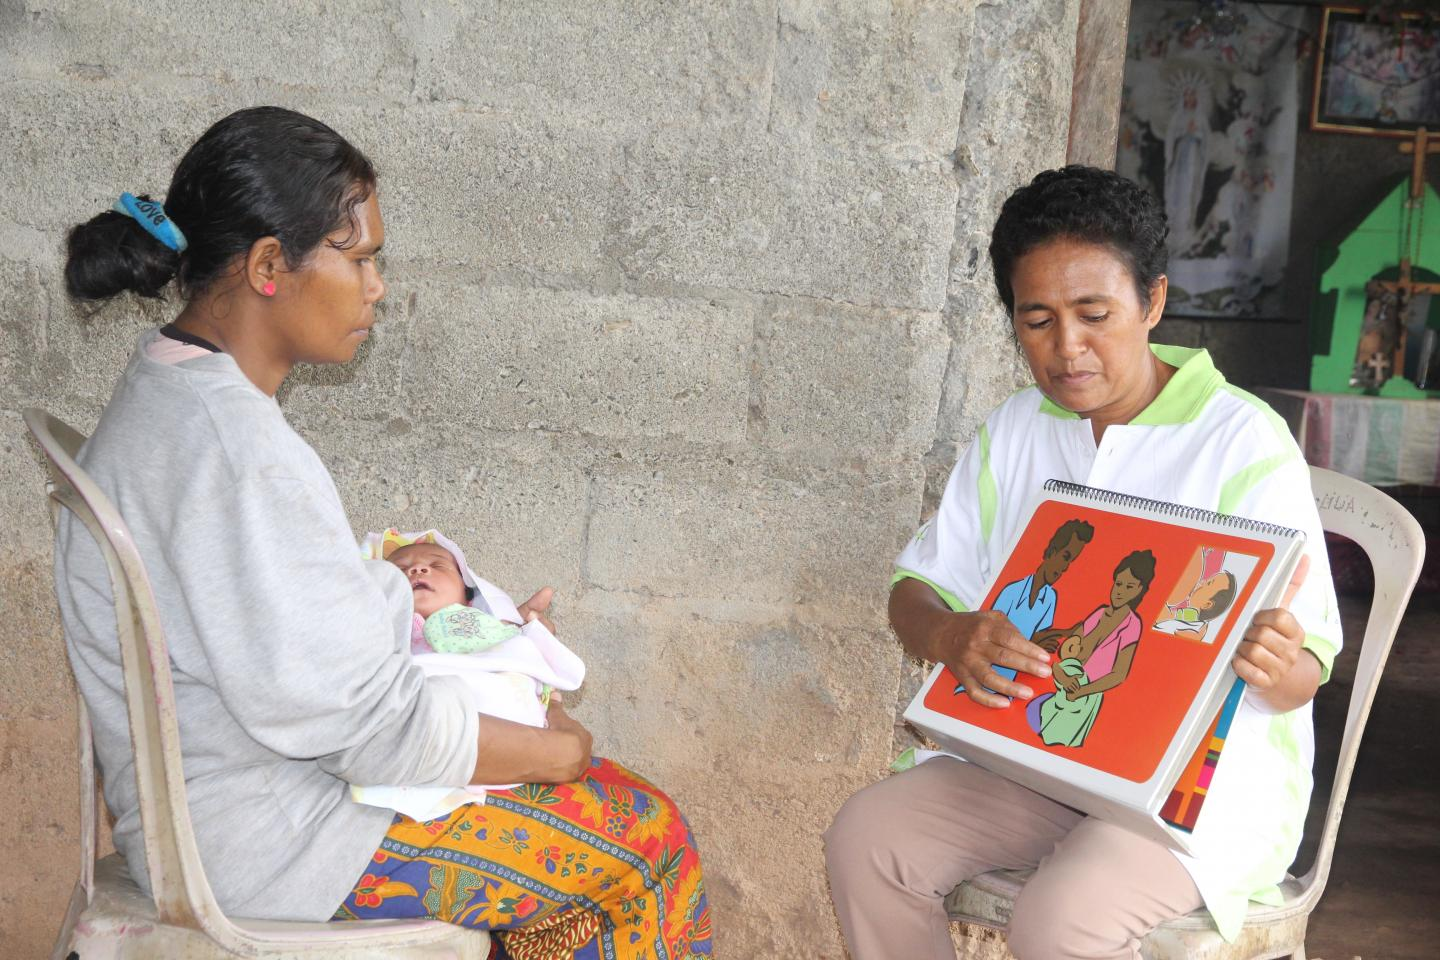 Joana dos Santos − a committed health volunteer reaching out to mothers | UNICEF Timor-Leste